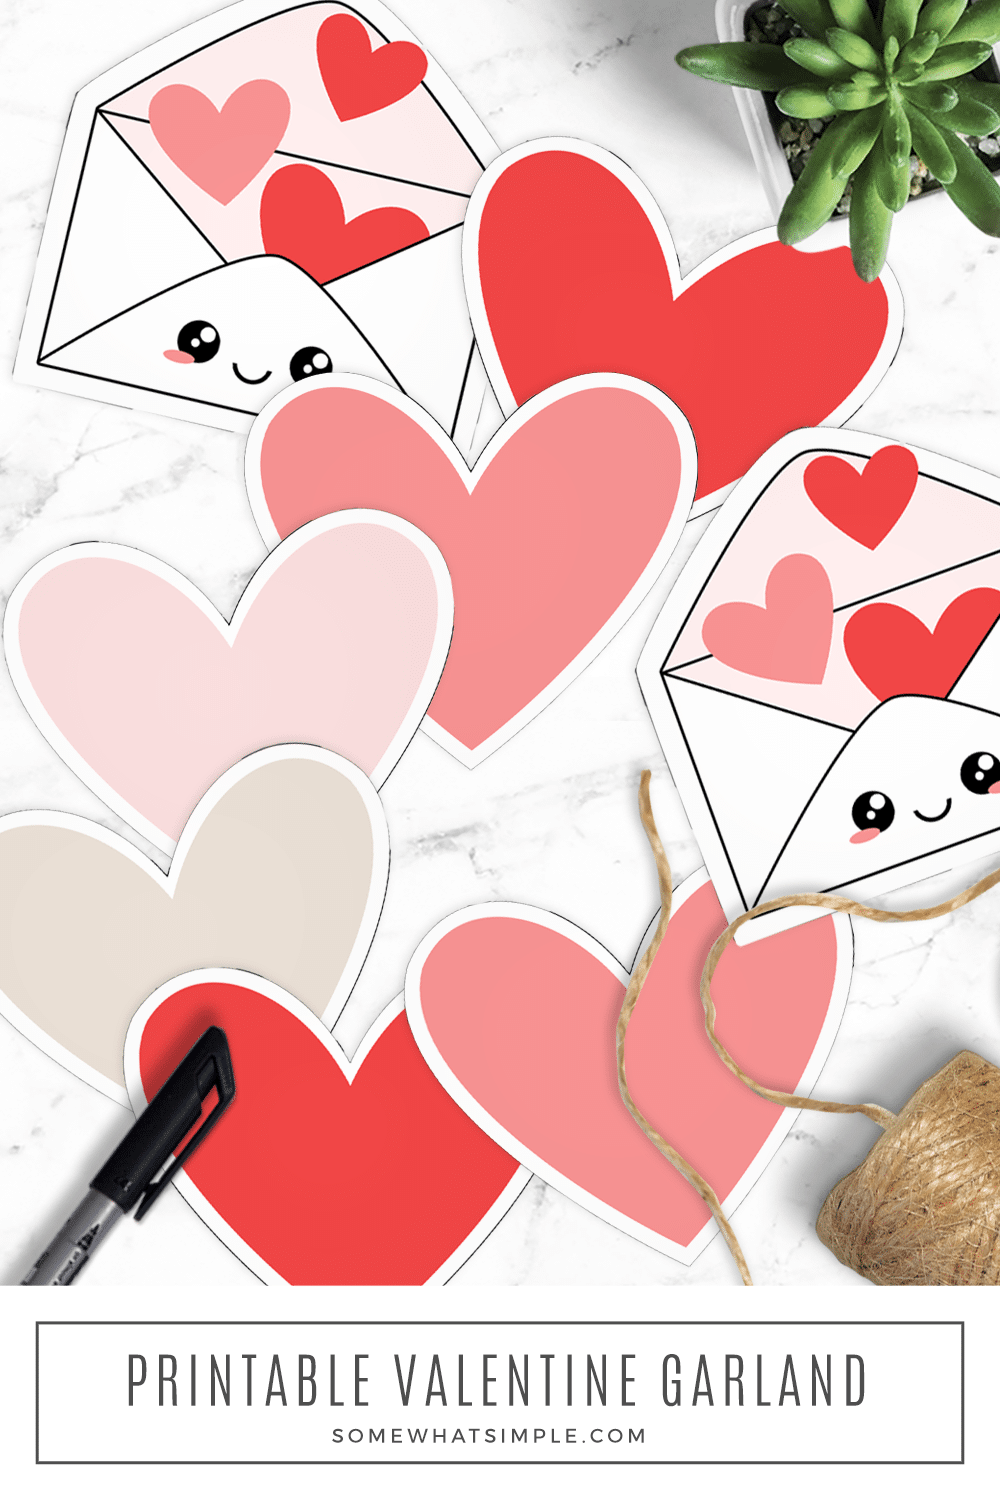 A fun family valentine garland that is simple, cute, and meaningful! Download our free printables and make one for your home today! via @somewhatsimple